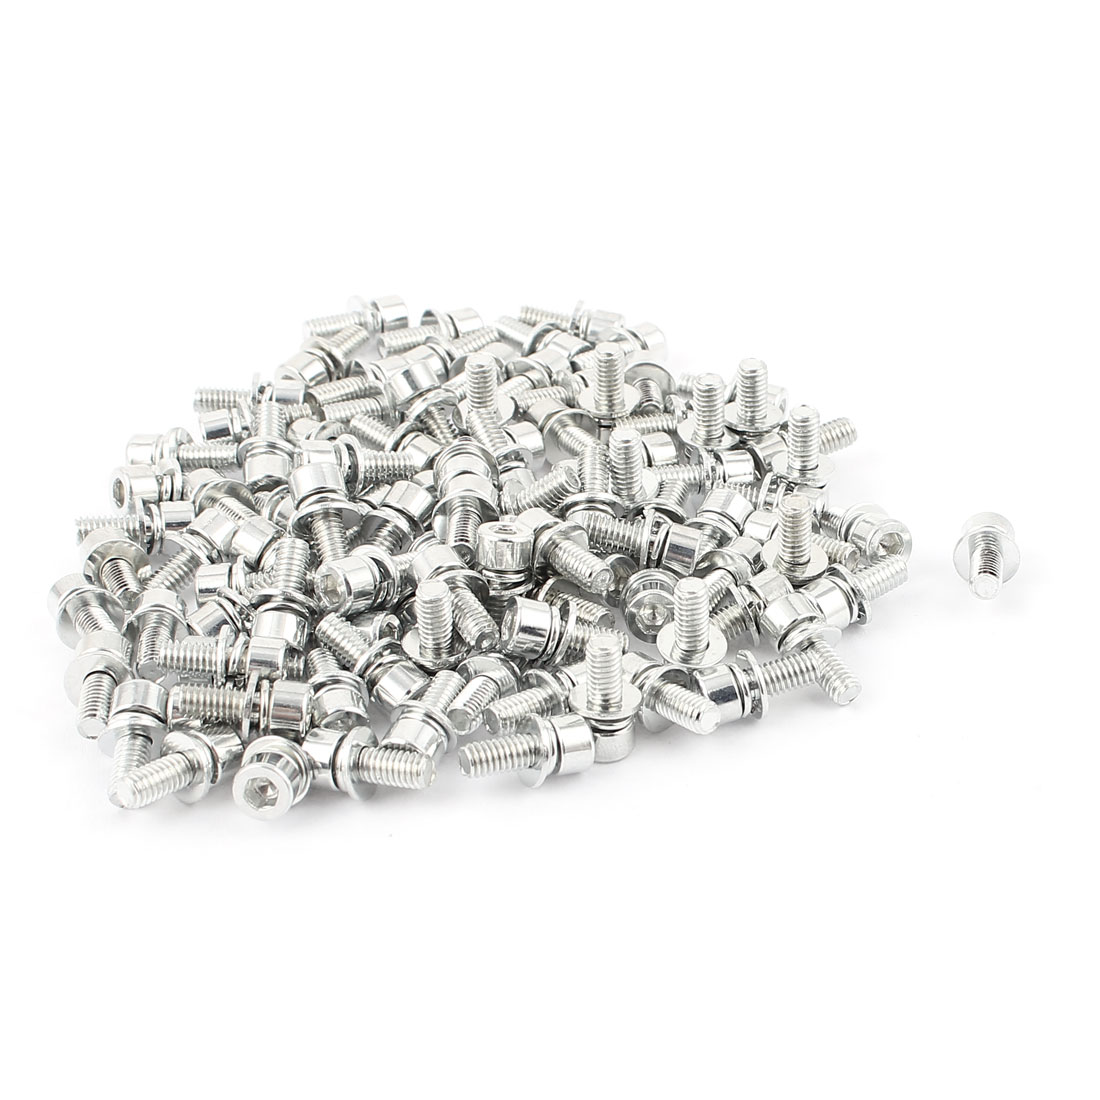 M4x10mmx8mm Zinc Plated Hex Socket Round Head Screws Bolt 100pcs w washers